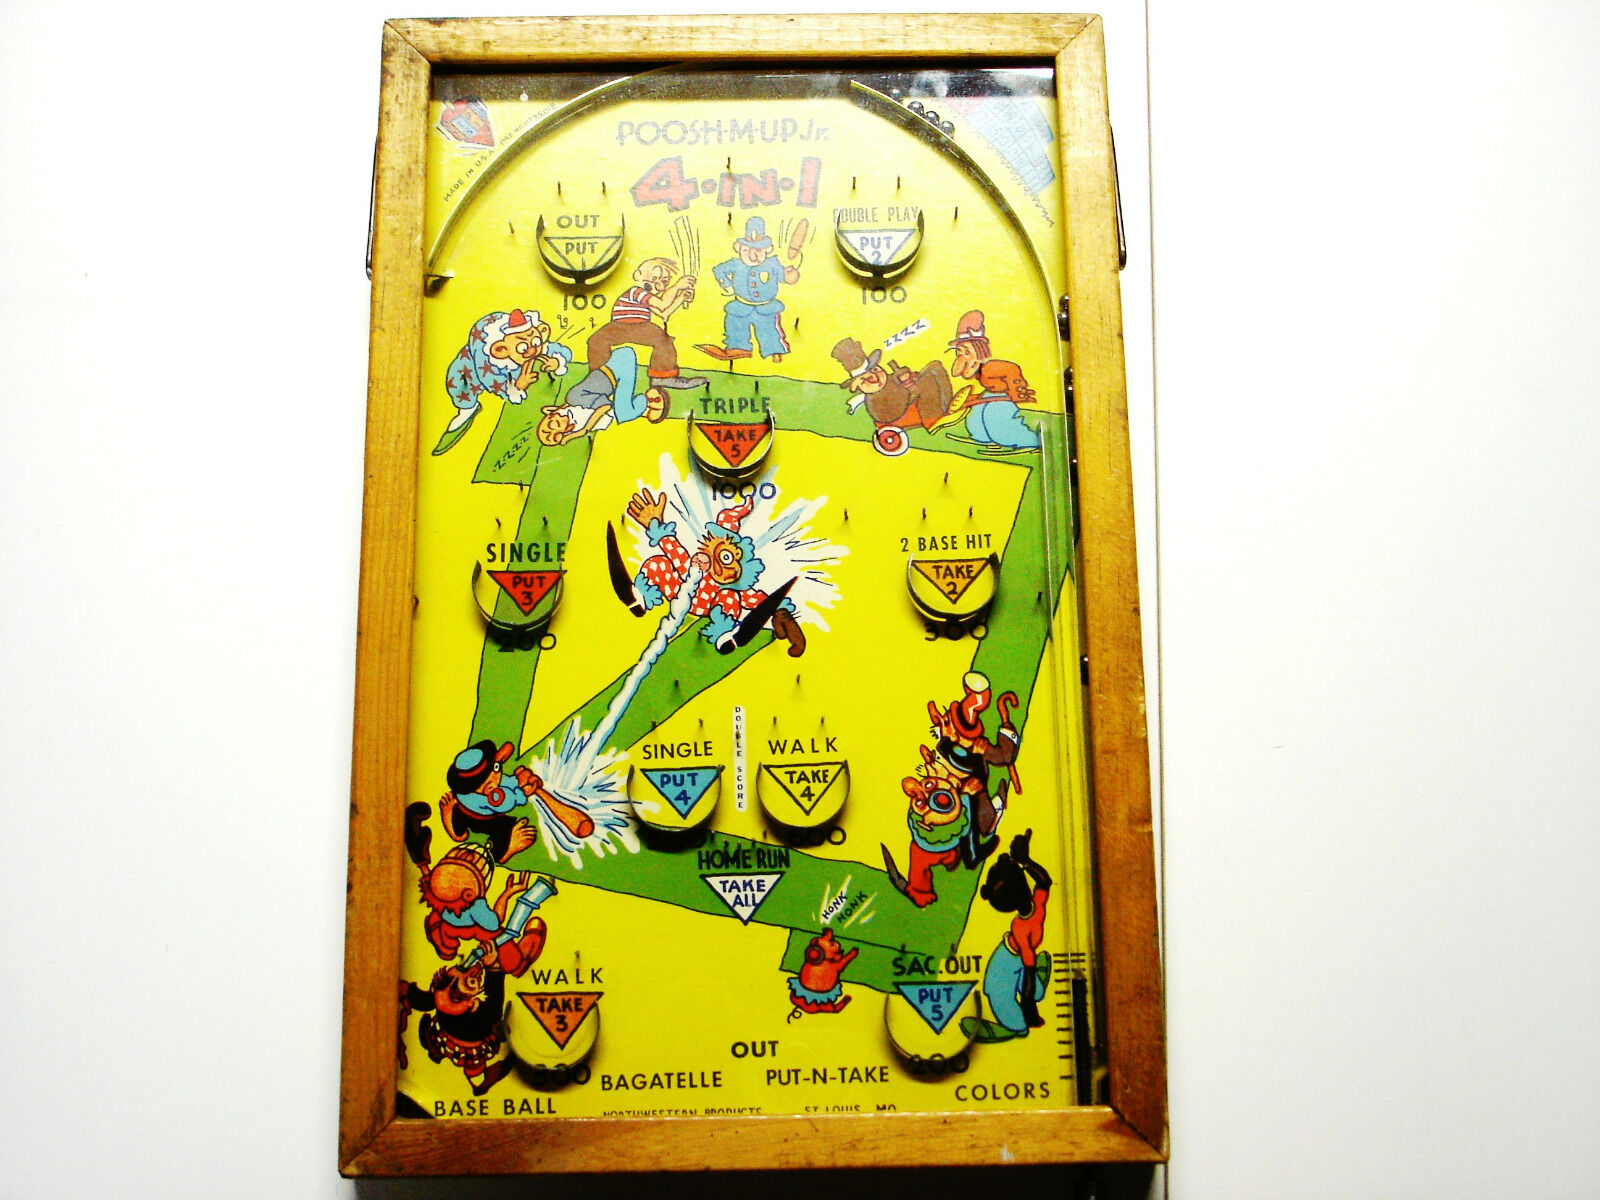 VINTAGE 1930's PUSH M UP Jr. 4 IN 1 PINBALL GAME - Northwestern